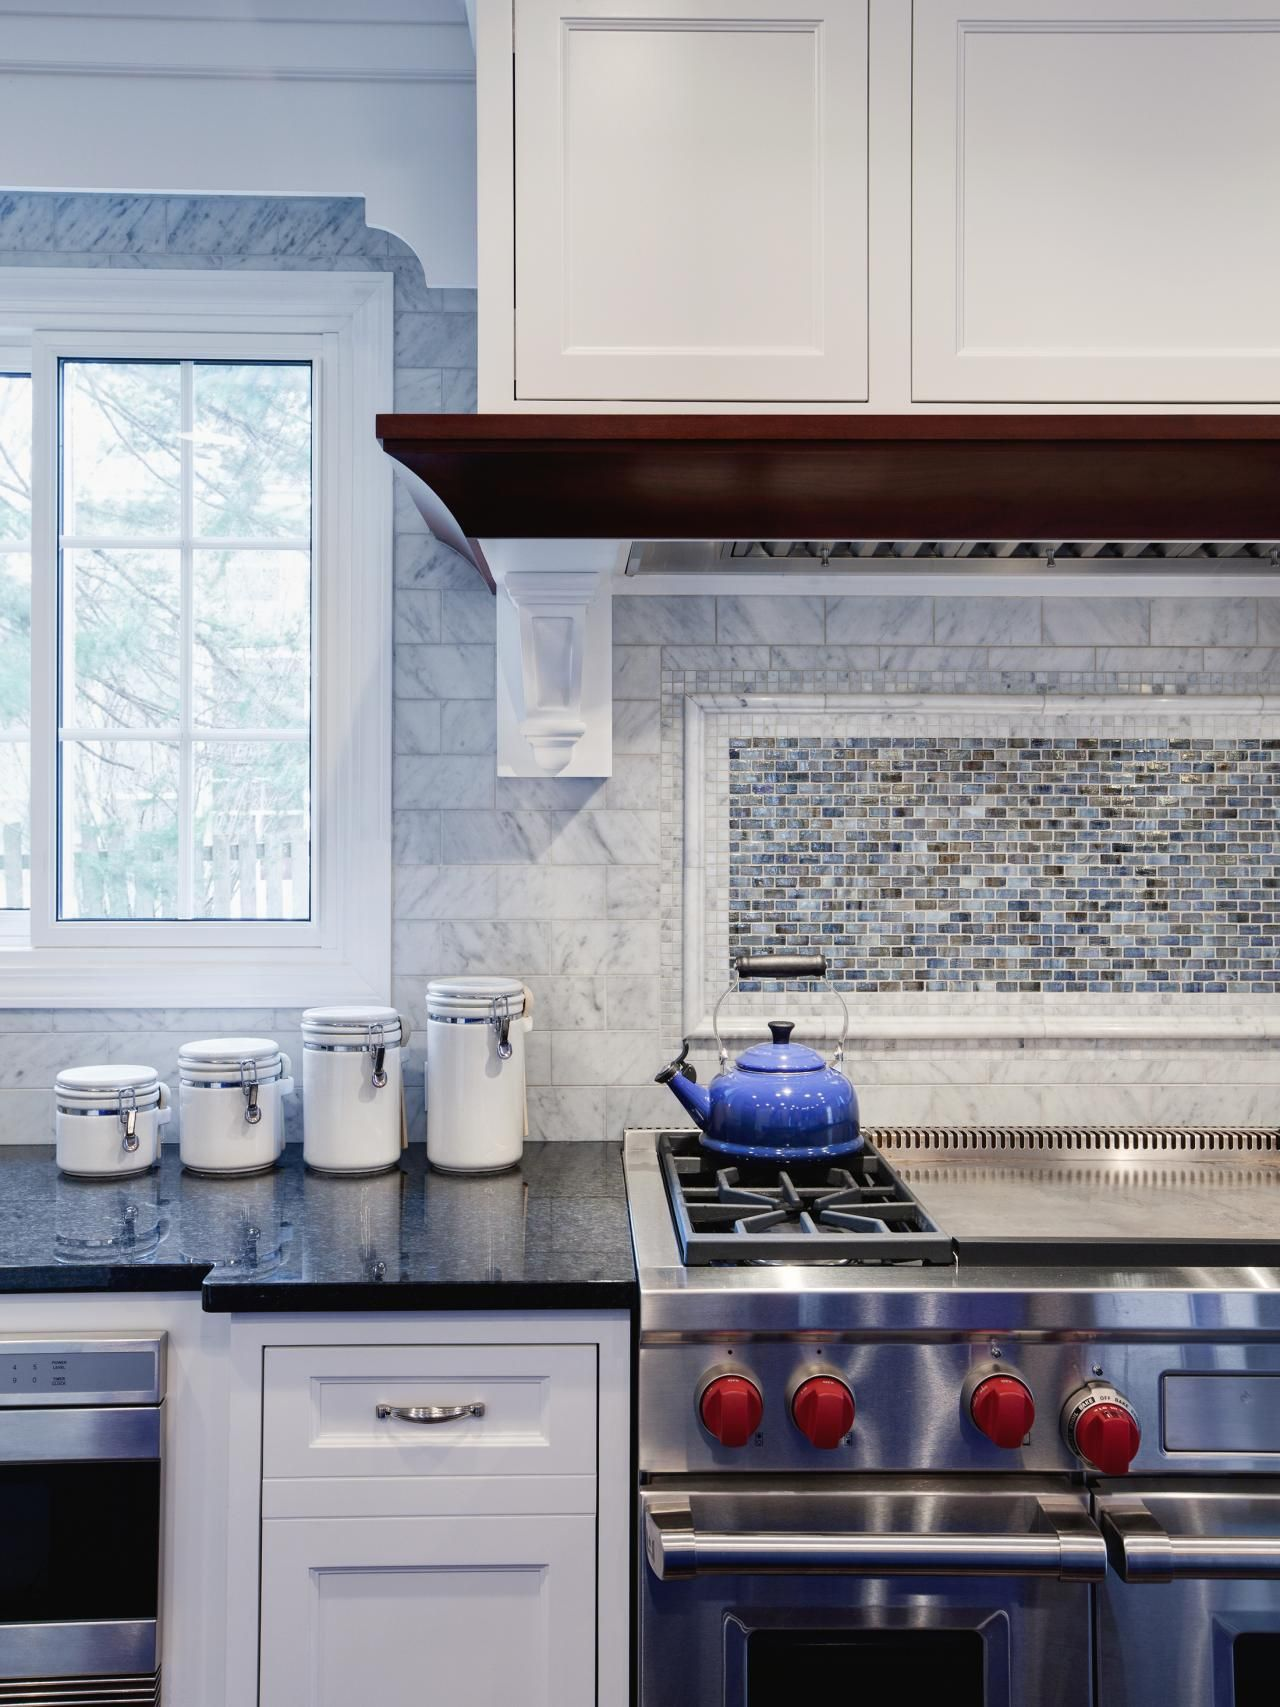 Pictures Of Kitchen Backsplash Ideas From Counter Top